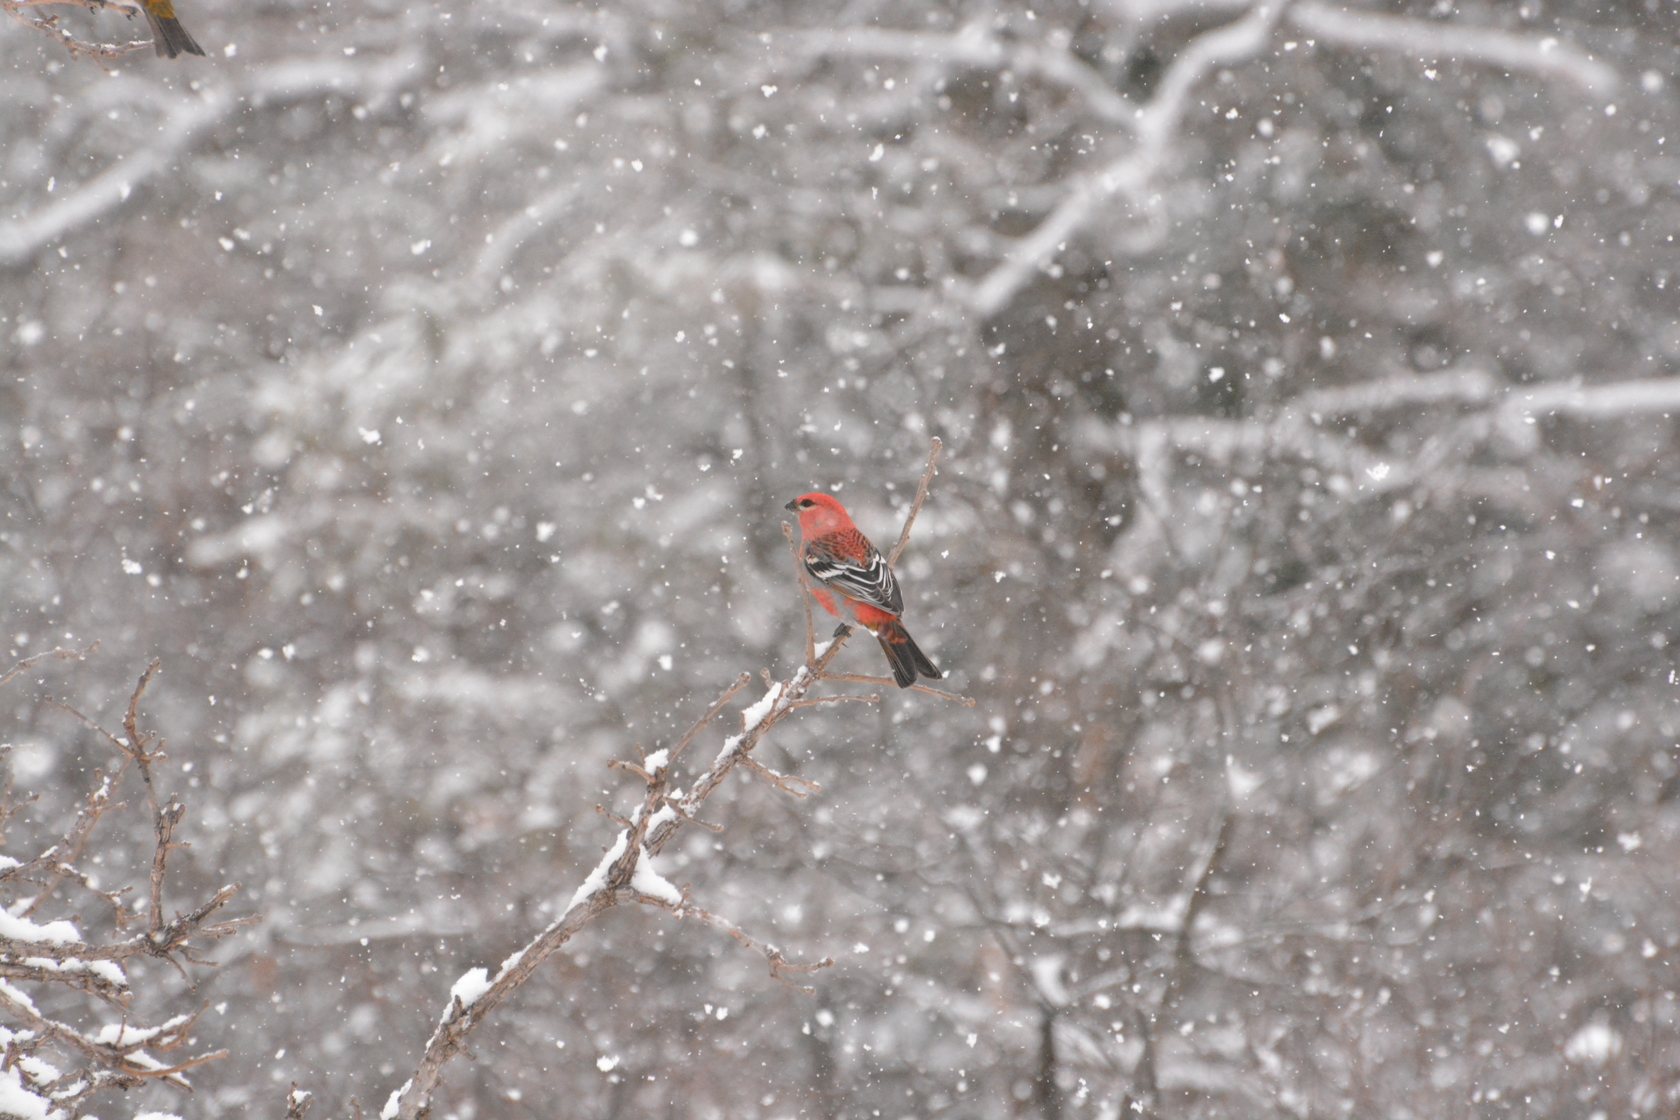 A cardinal sitting on snowy branches